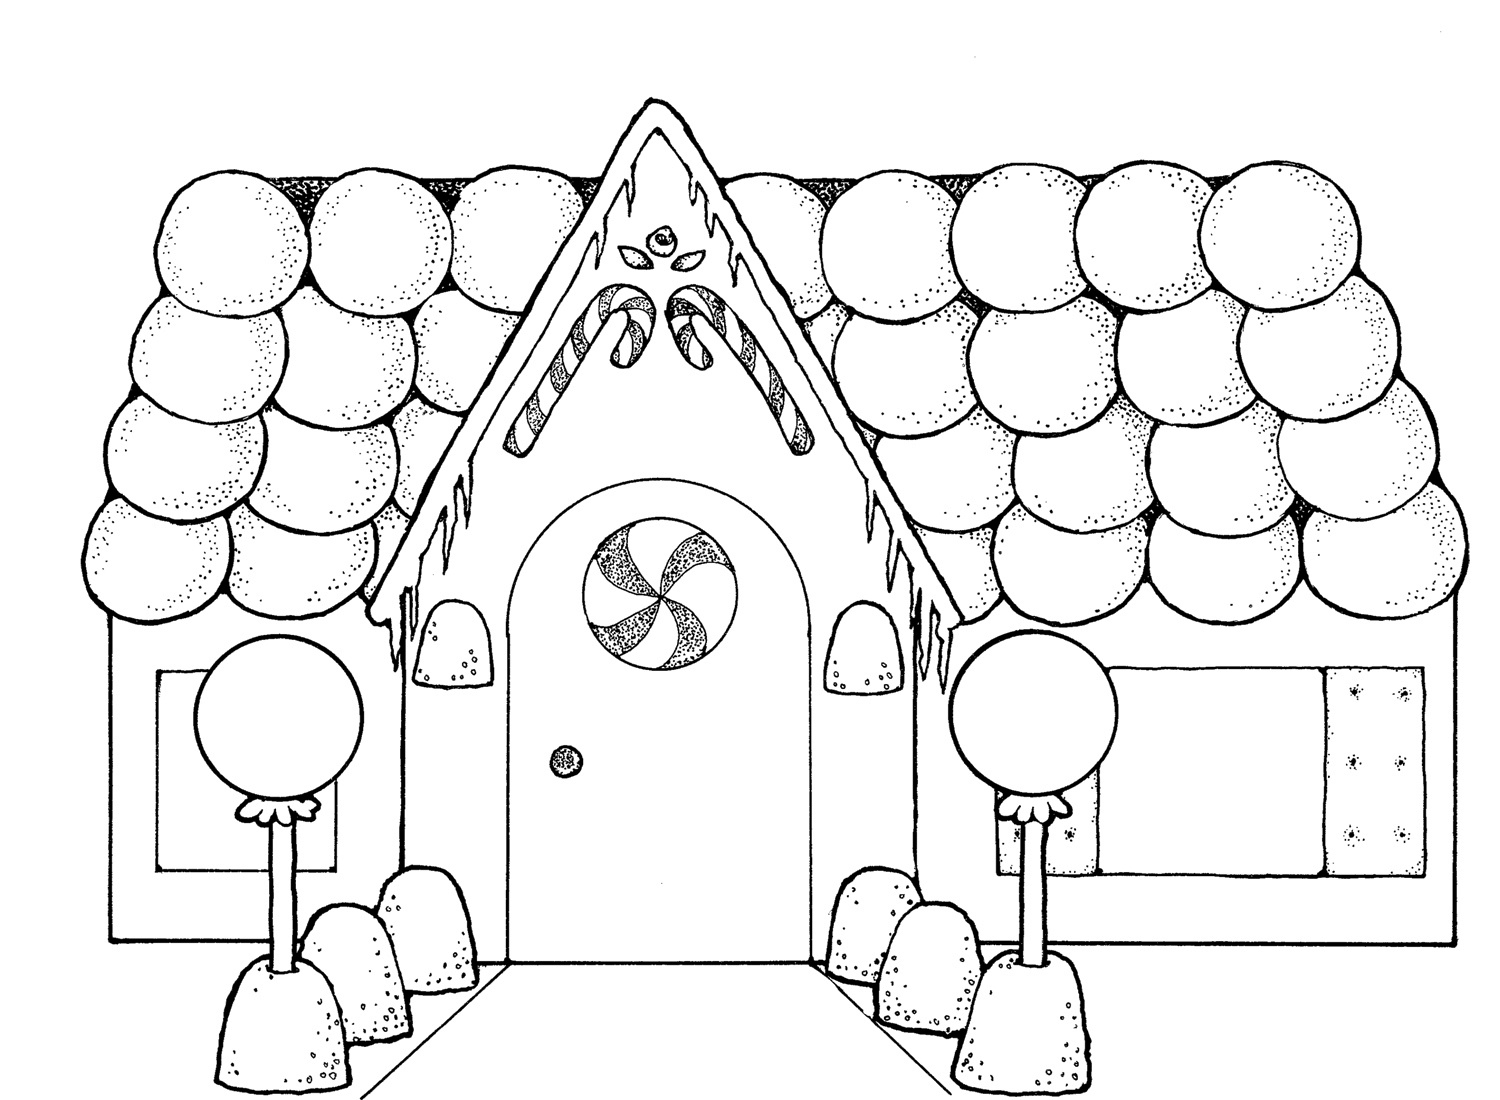 1500x1100 Unique Cute Gingerbread Houses Coloring Page Sewing Free